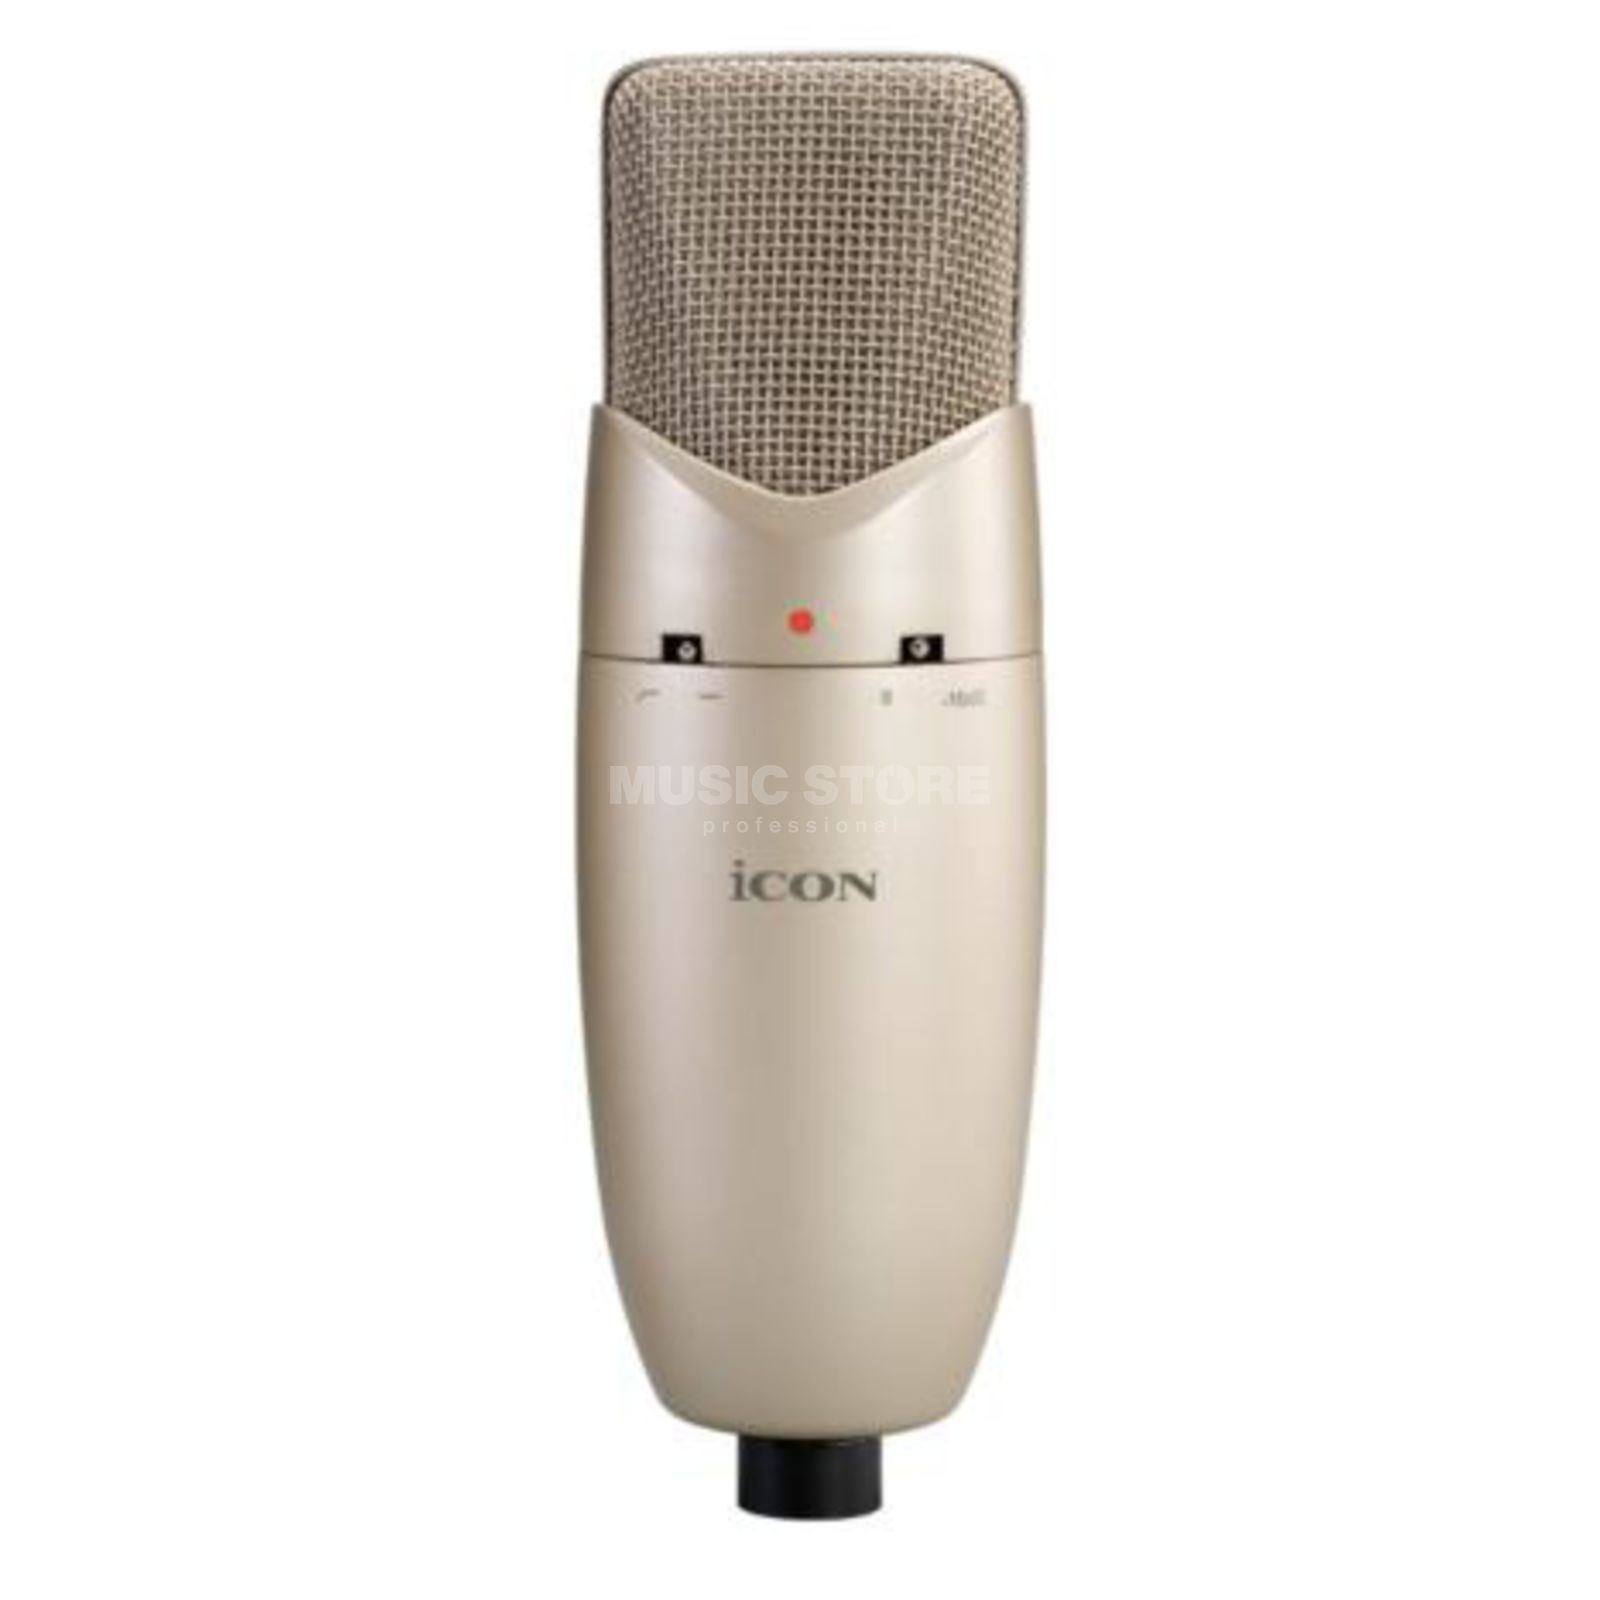 iCON M3 Studio Microphone Large Membrane Microphone, K/N/A Produktbillede